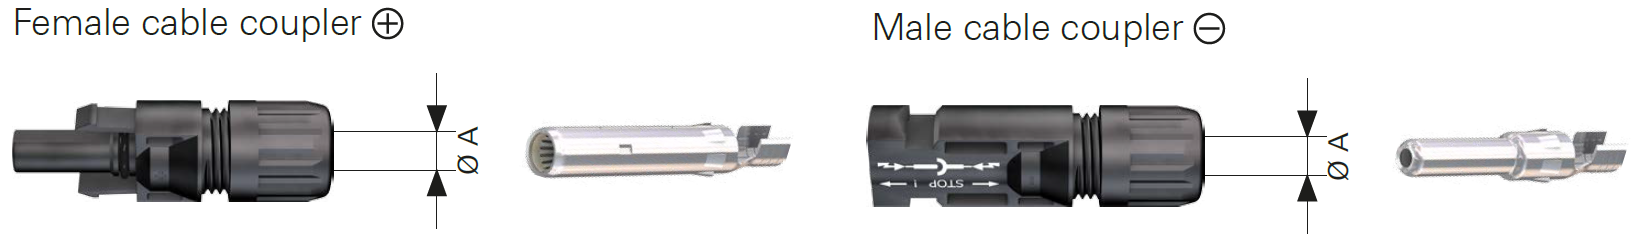 MC4 Contact male and female coupler solar connectors